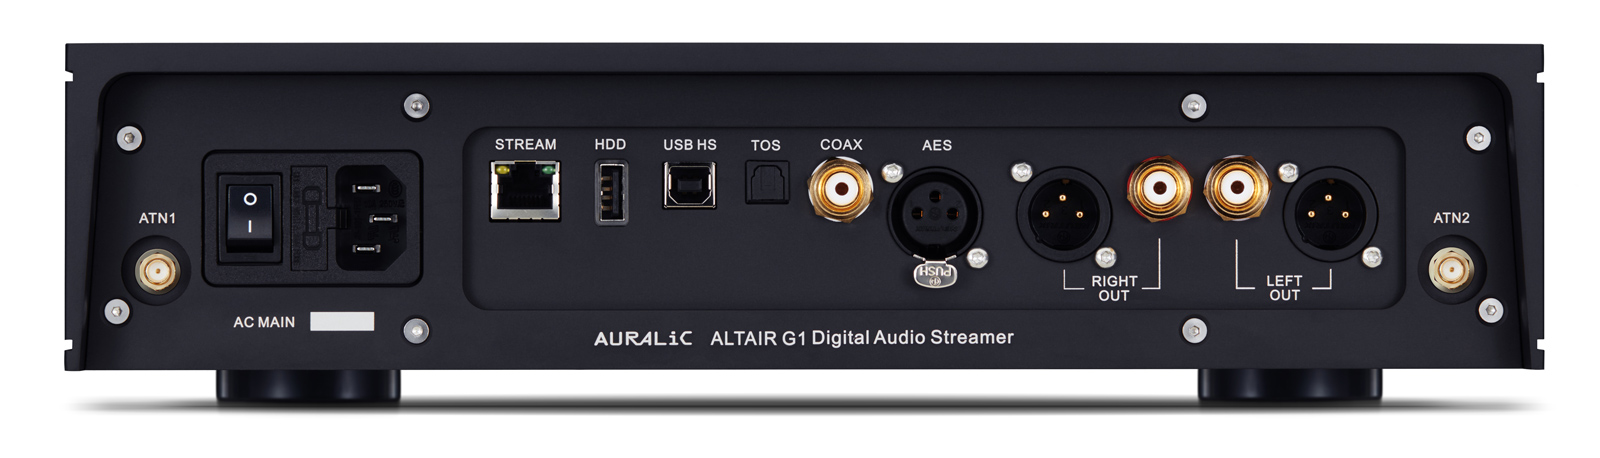 ALTAIR G1 Connection panel